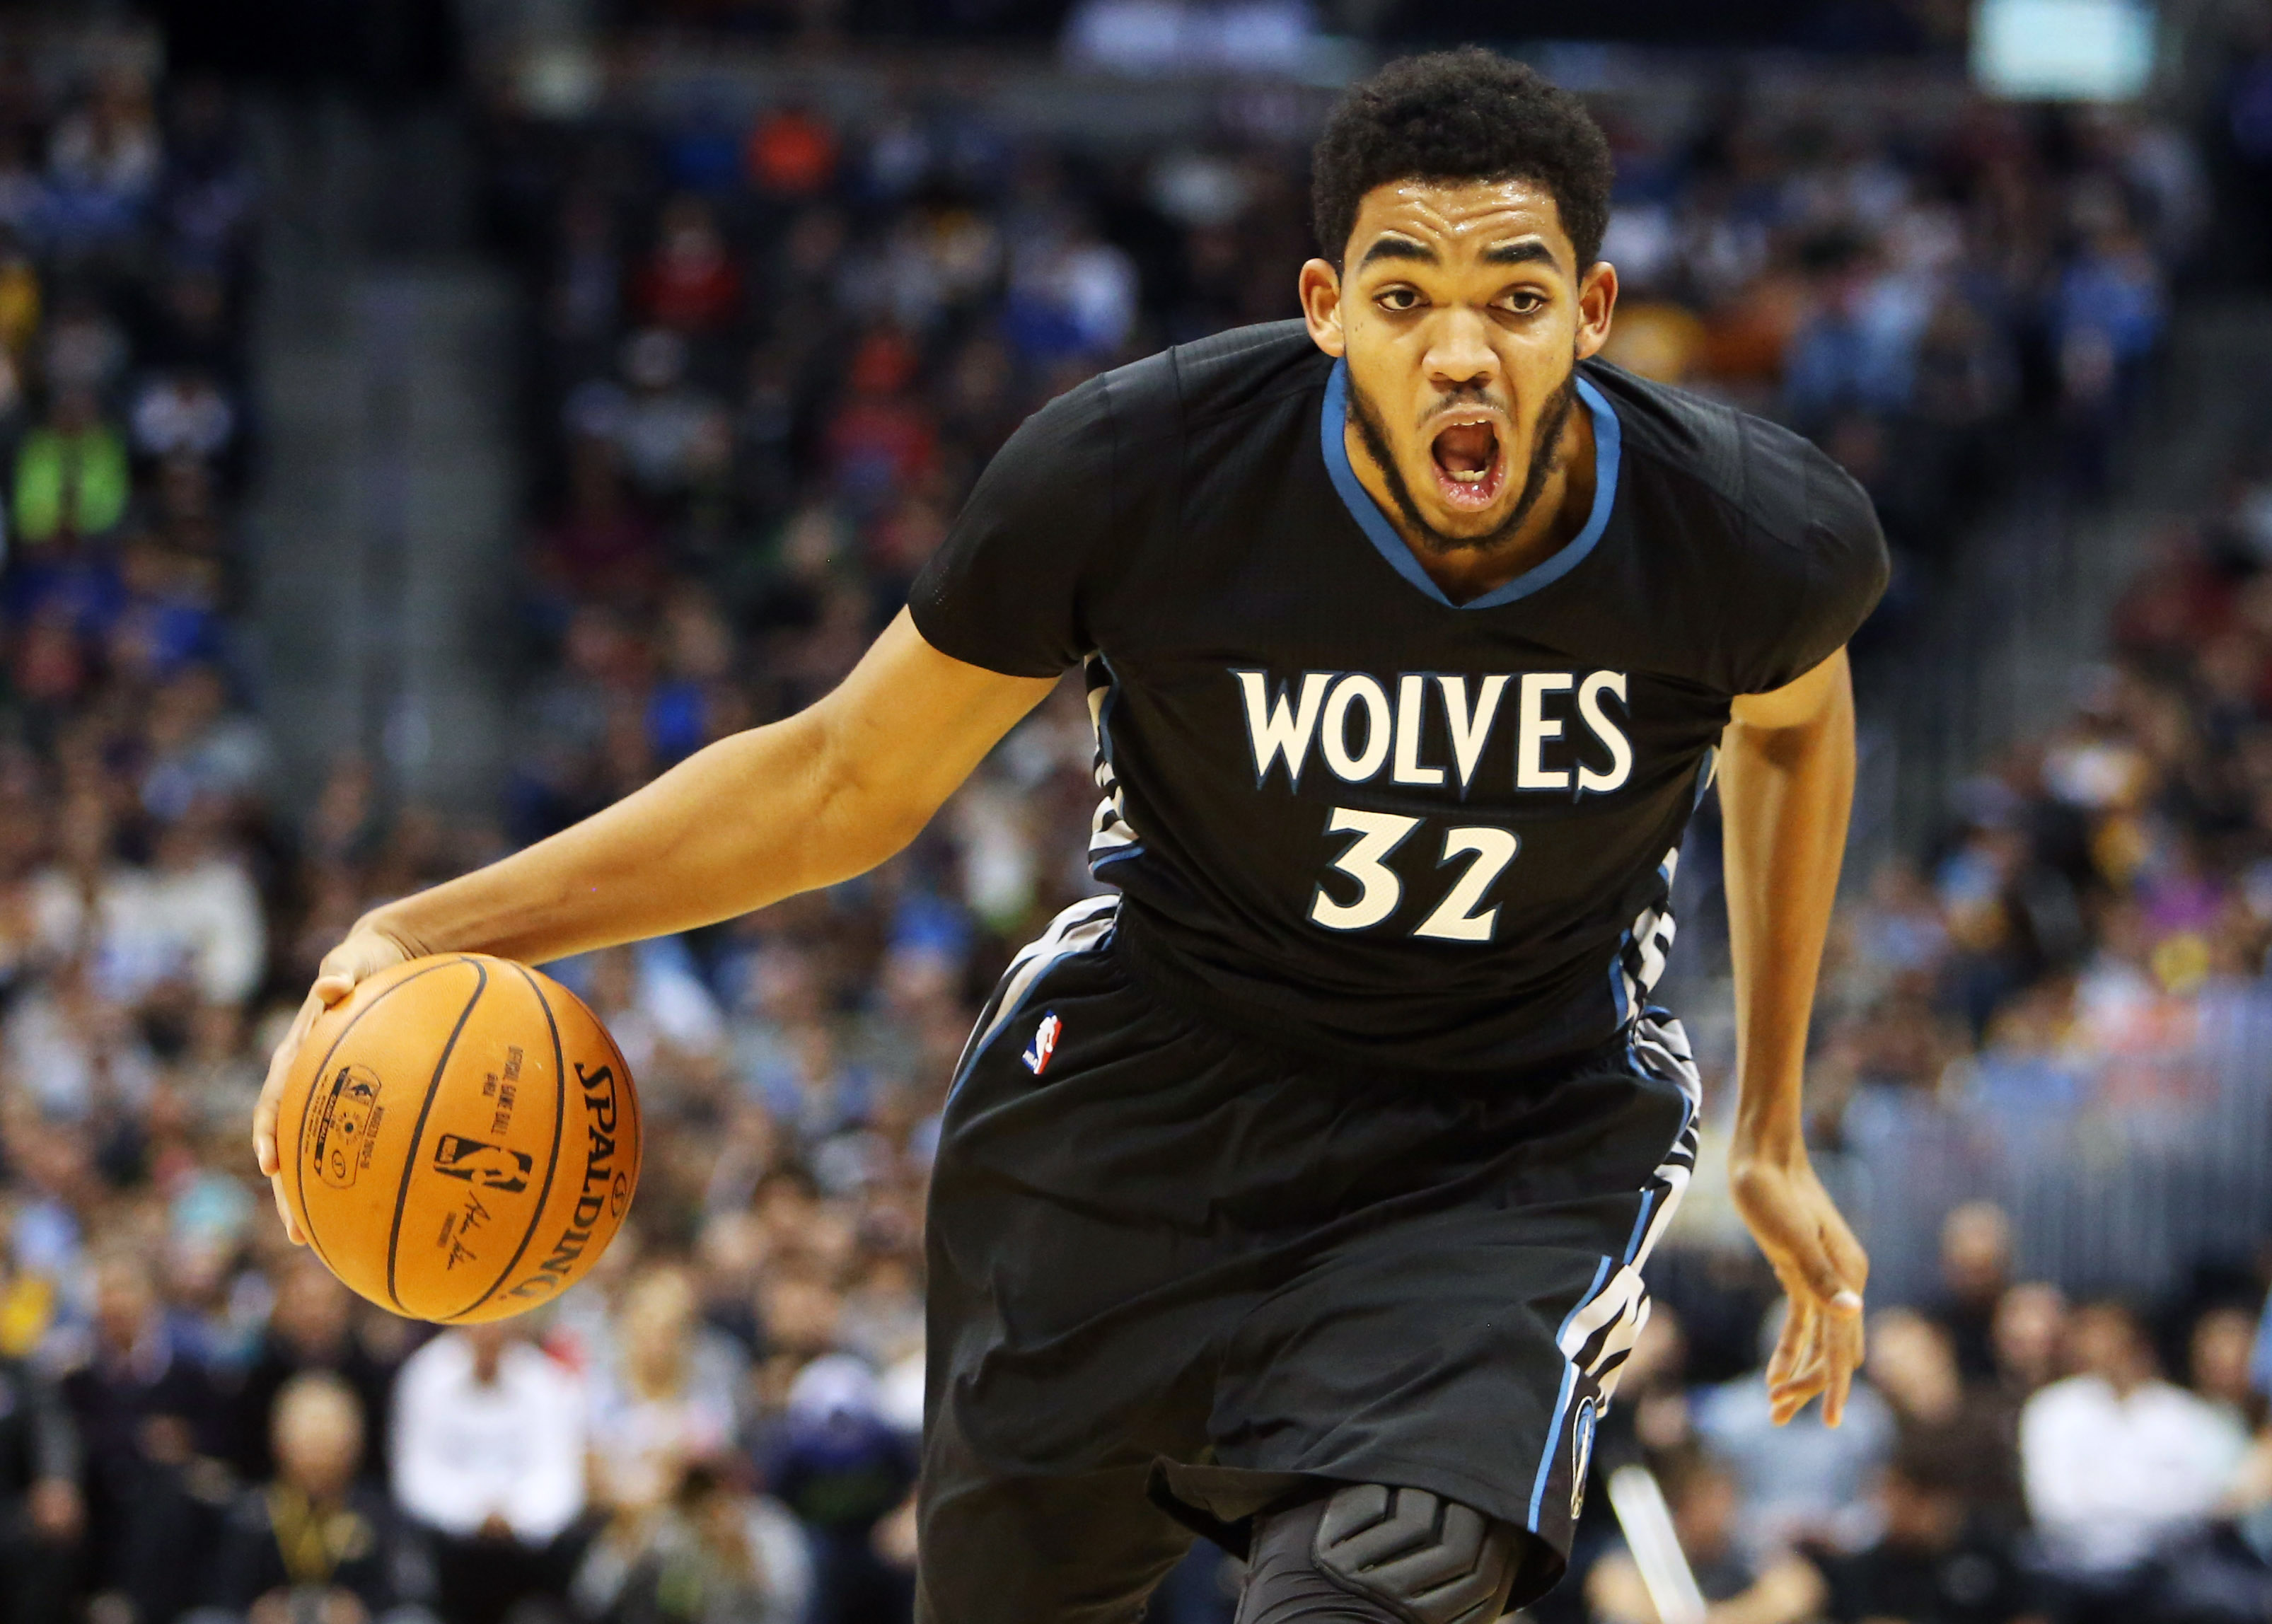 It's early, but it's clear Karl-Anthony Towns is for real.